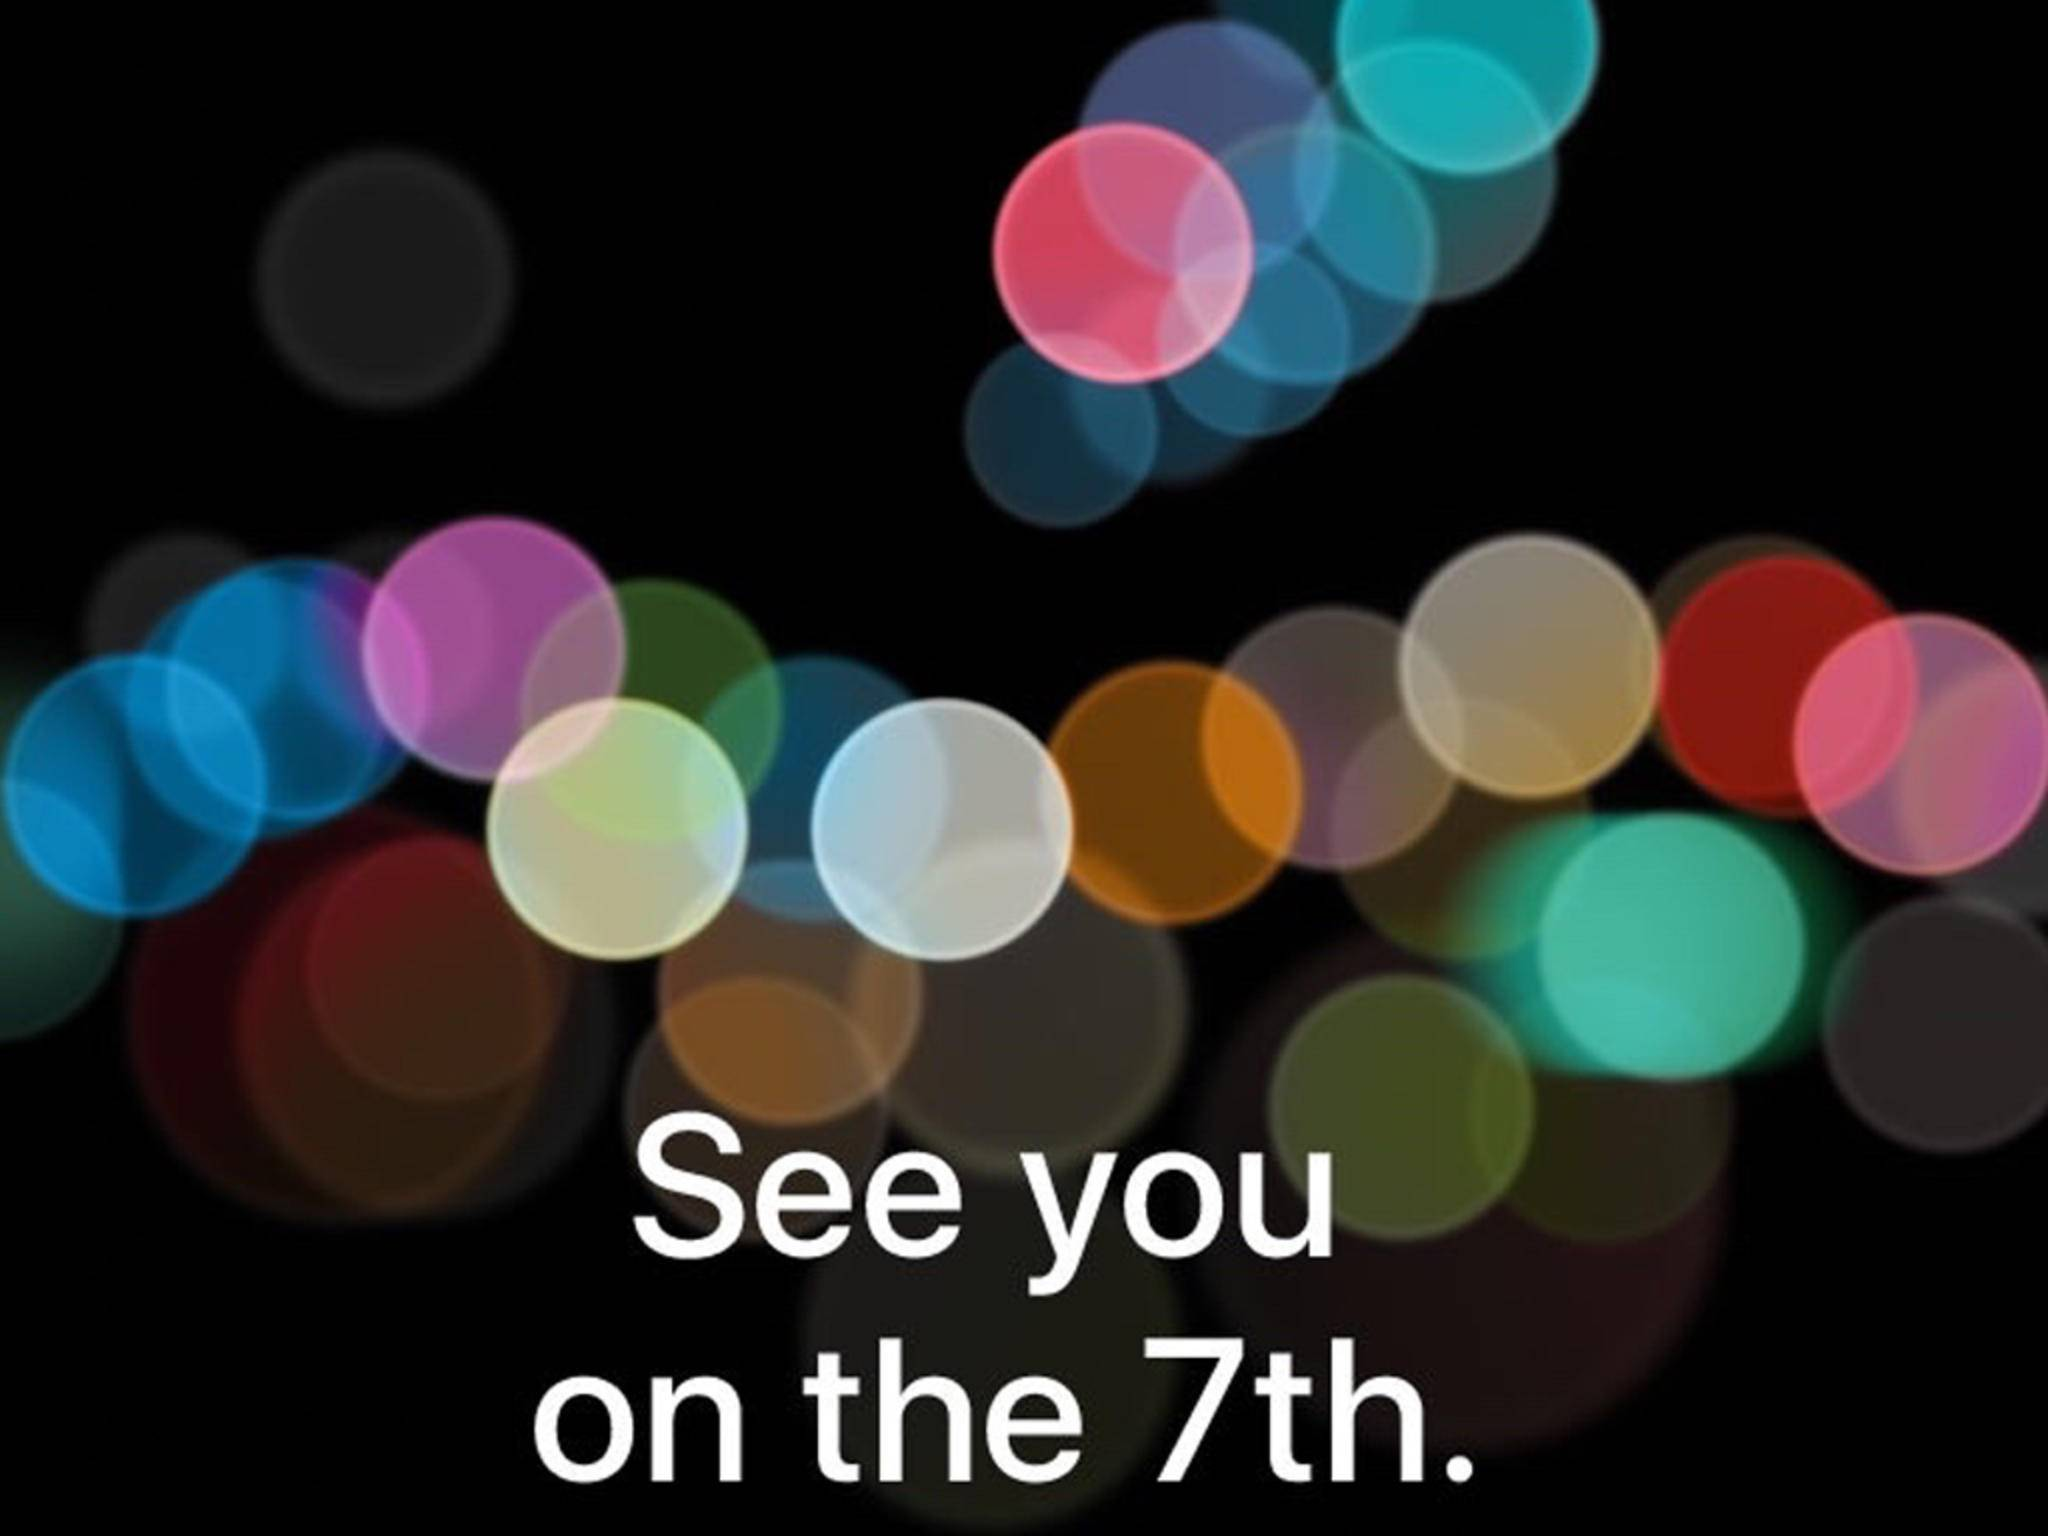 Apple lädt zur Keynote am 7. September.